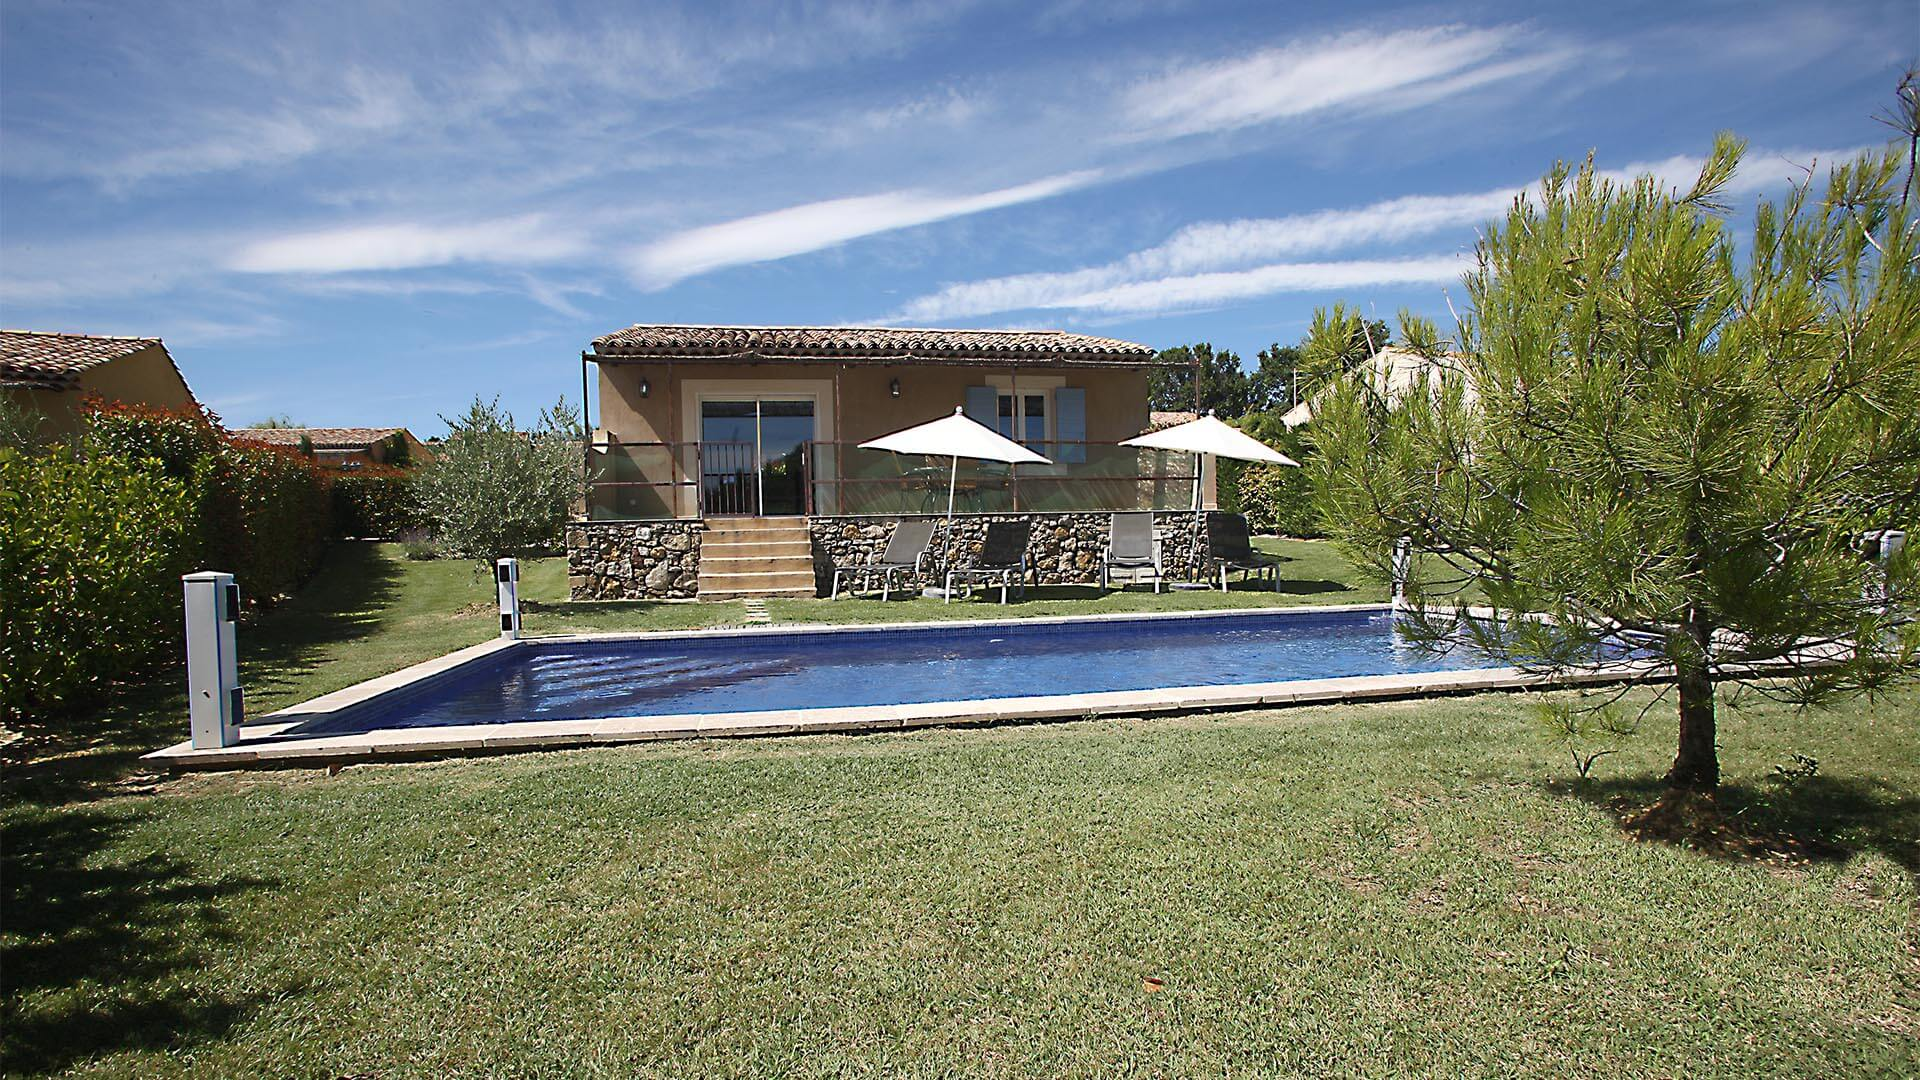 Rent holiday 2 bedroom villa in Haute Provence | Villa terre nature | Garden and pool